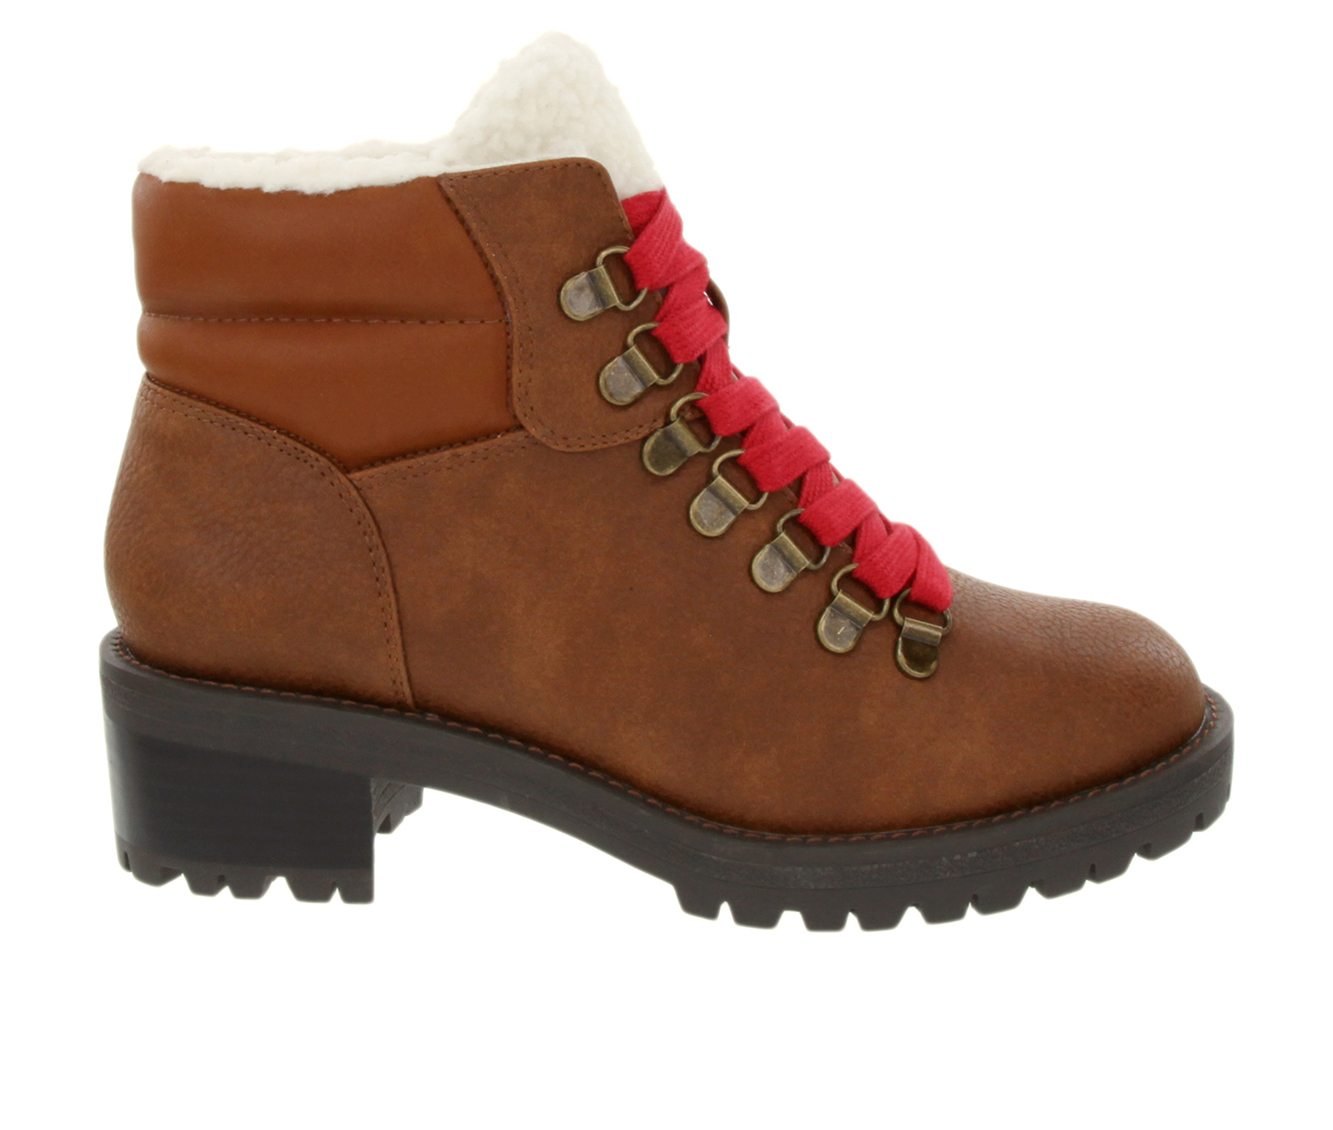 Sugar Marisol Women's Boot (Brown Faux Leather)